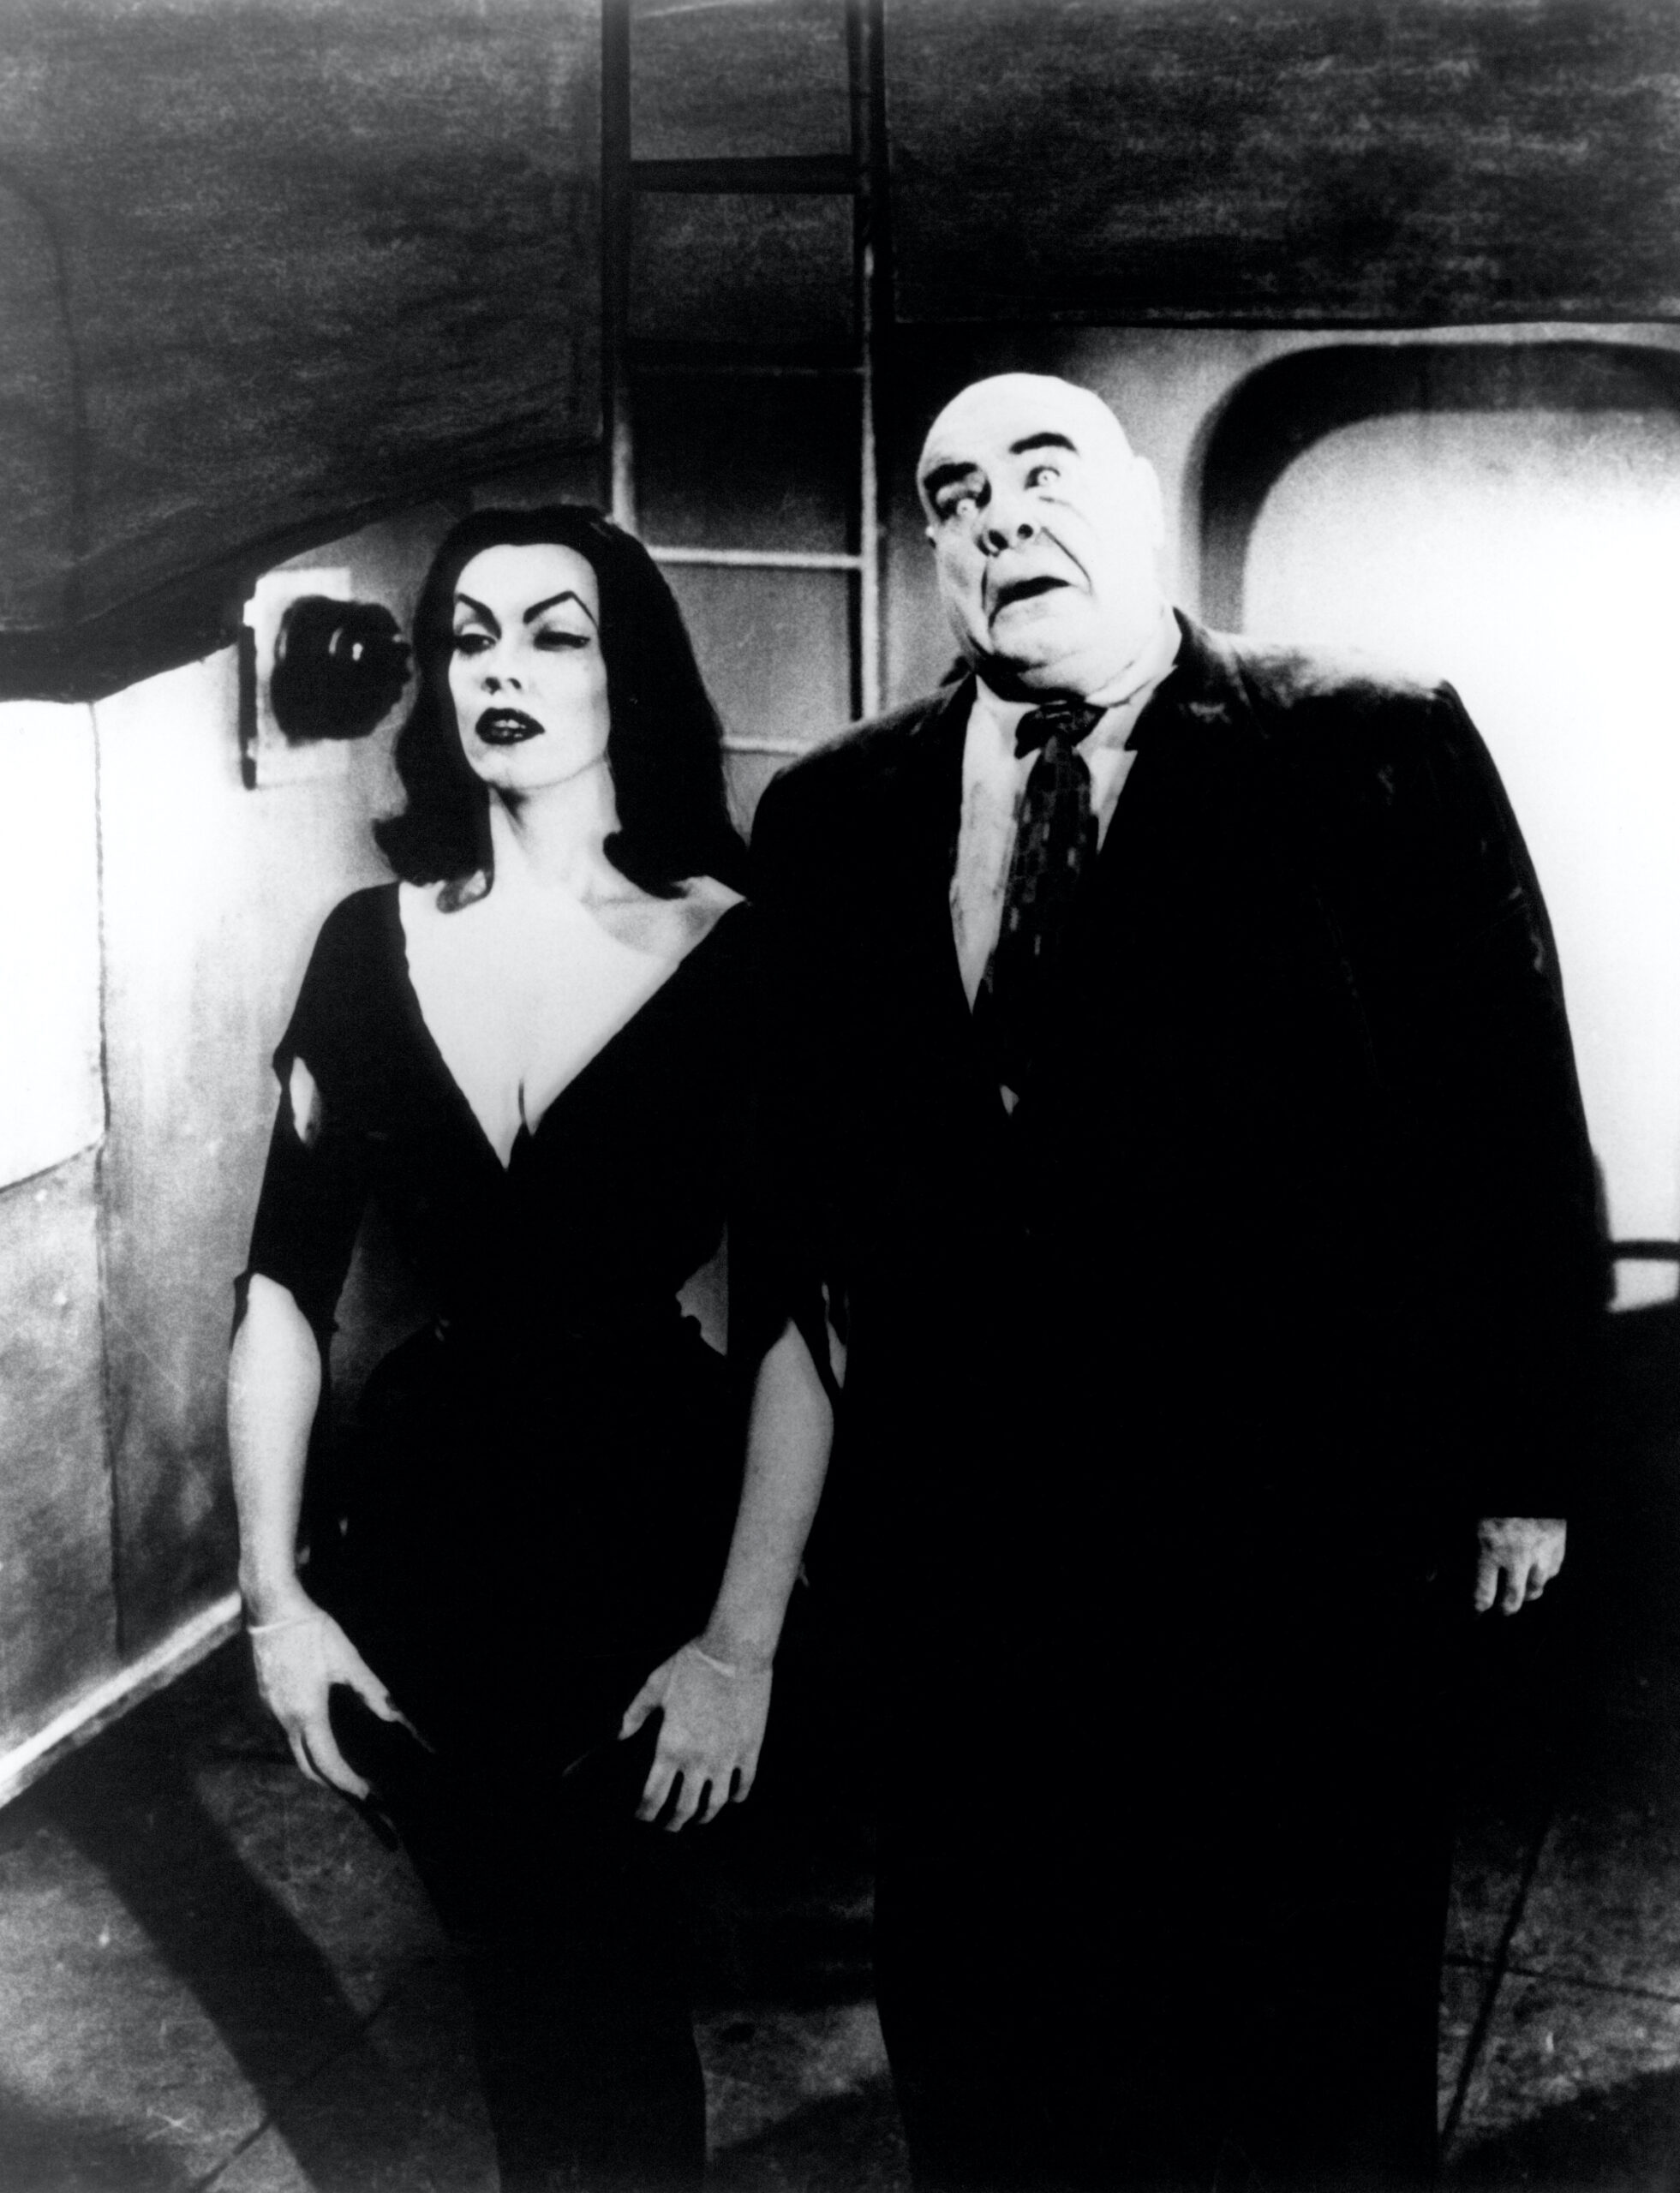 Plan 9 from Outer Space (1959)  Directed by Edward D. Wood Jr.  Shown from left: Vampira (aka Maila Nurmi), Tor Johnson